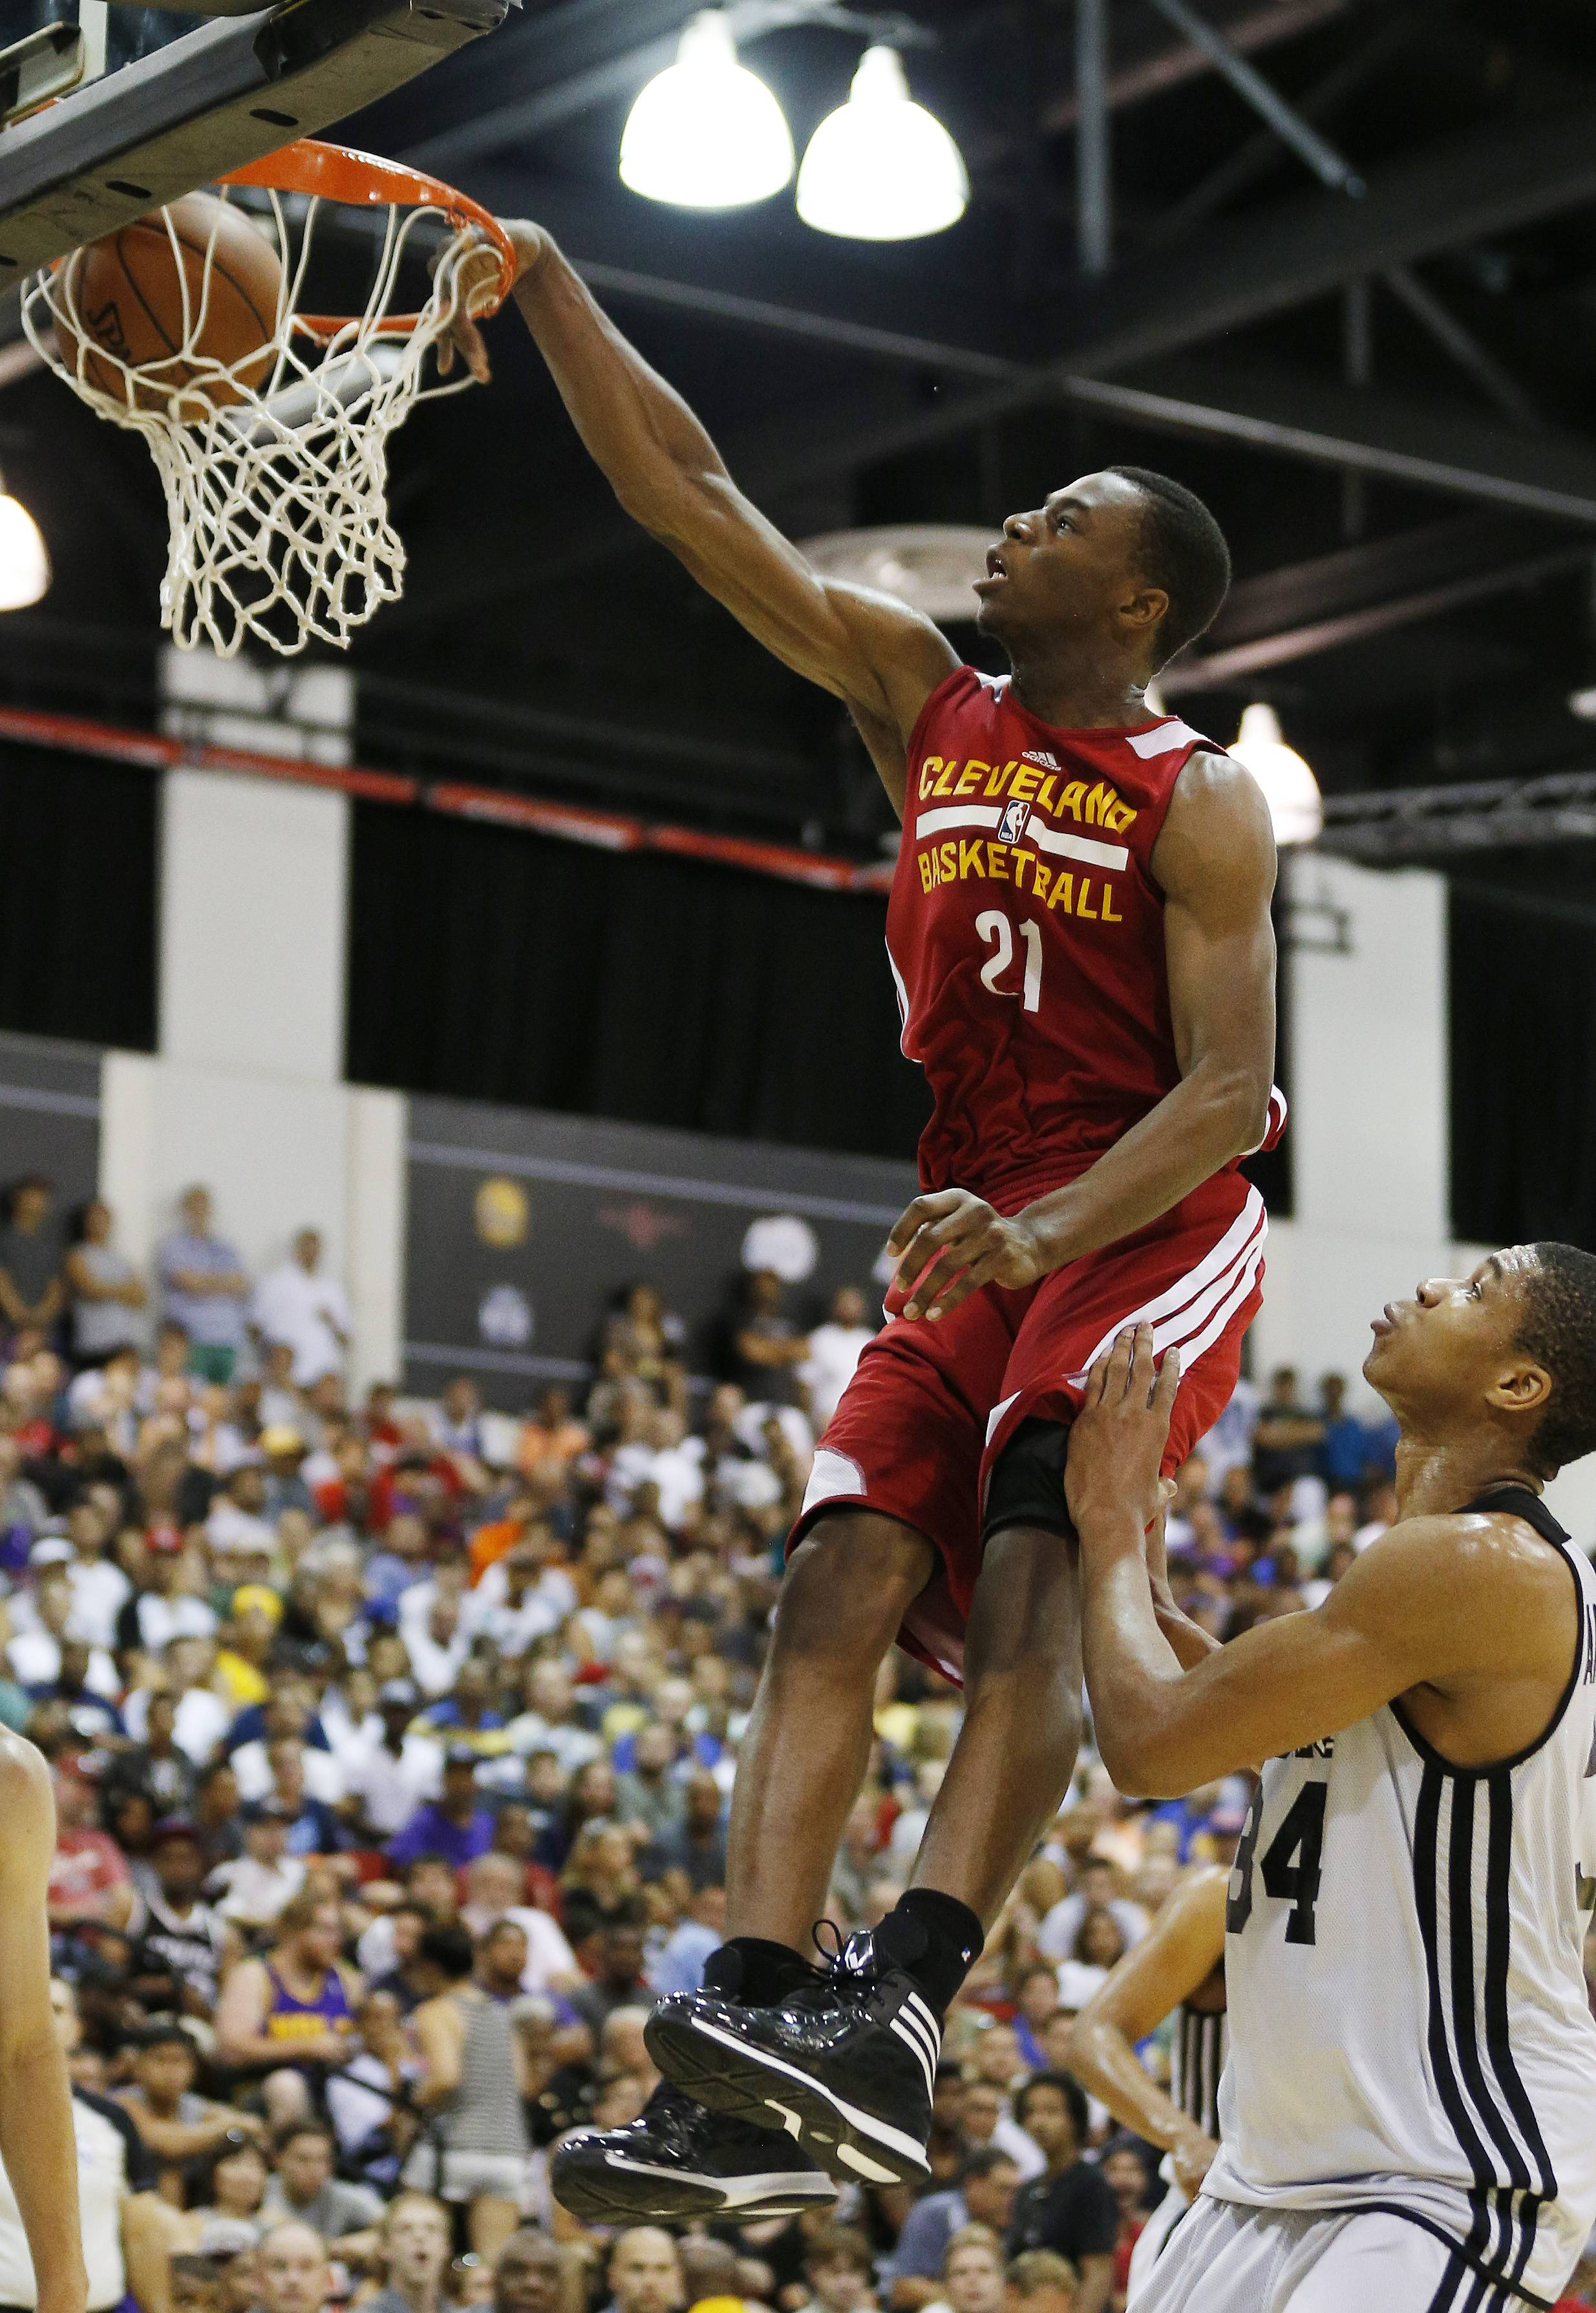 Andrew Wiggins has an NBA home. Maybe a temporary one. The Cavaliers signed the No. 1 overall draft pick Thursday, a deal that prevents Wiggins from being traded for 30 days. Wiggins has been linked to a possible blockbuster trade with Minnesota for All-Star forward Kevin Love. But any deal now involving Wiggins can't be finalized for at least 30 days.